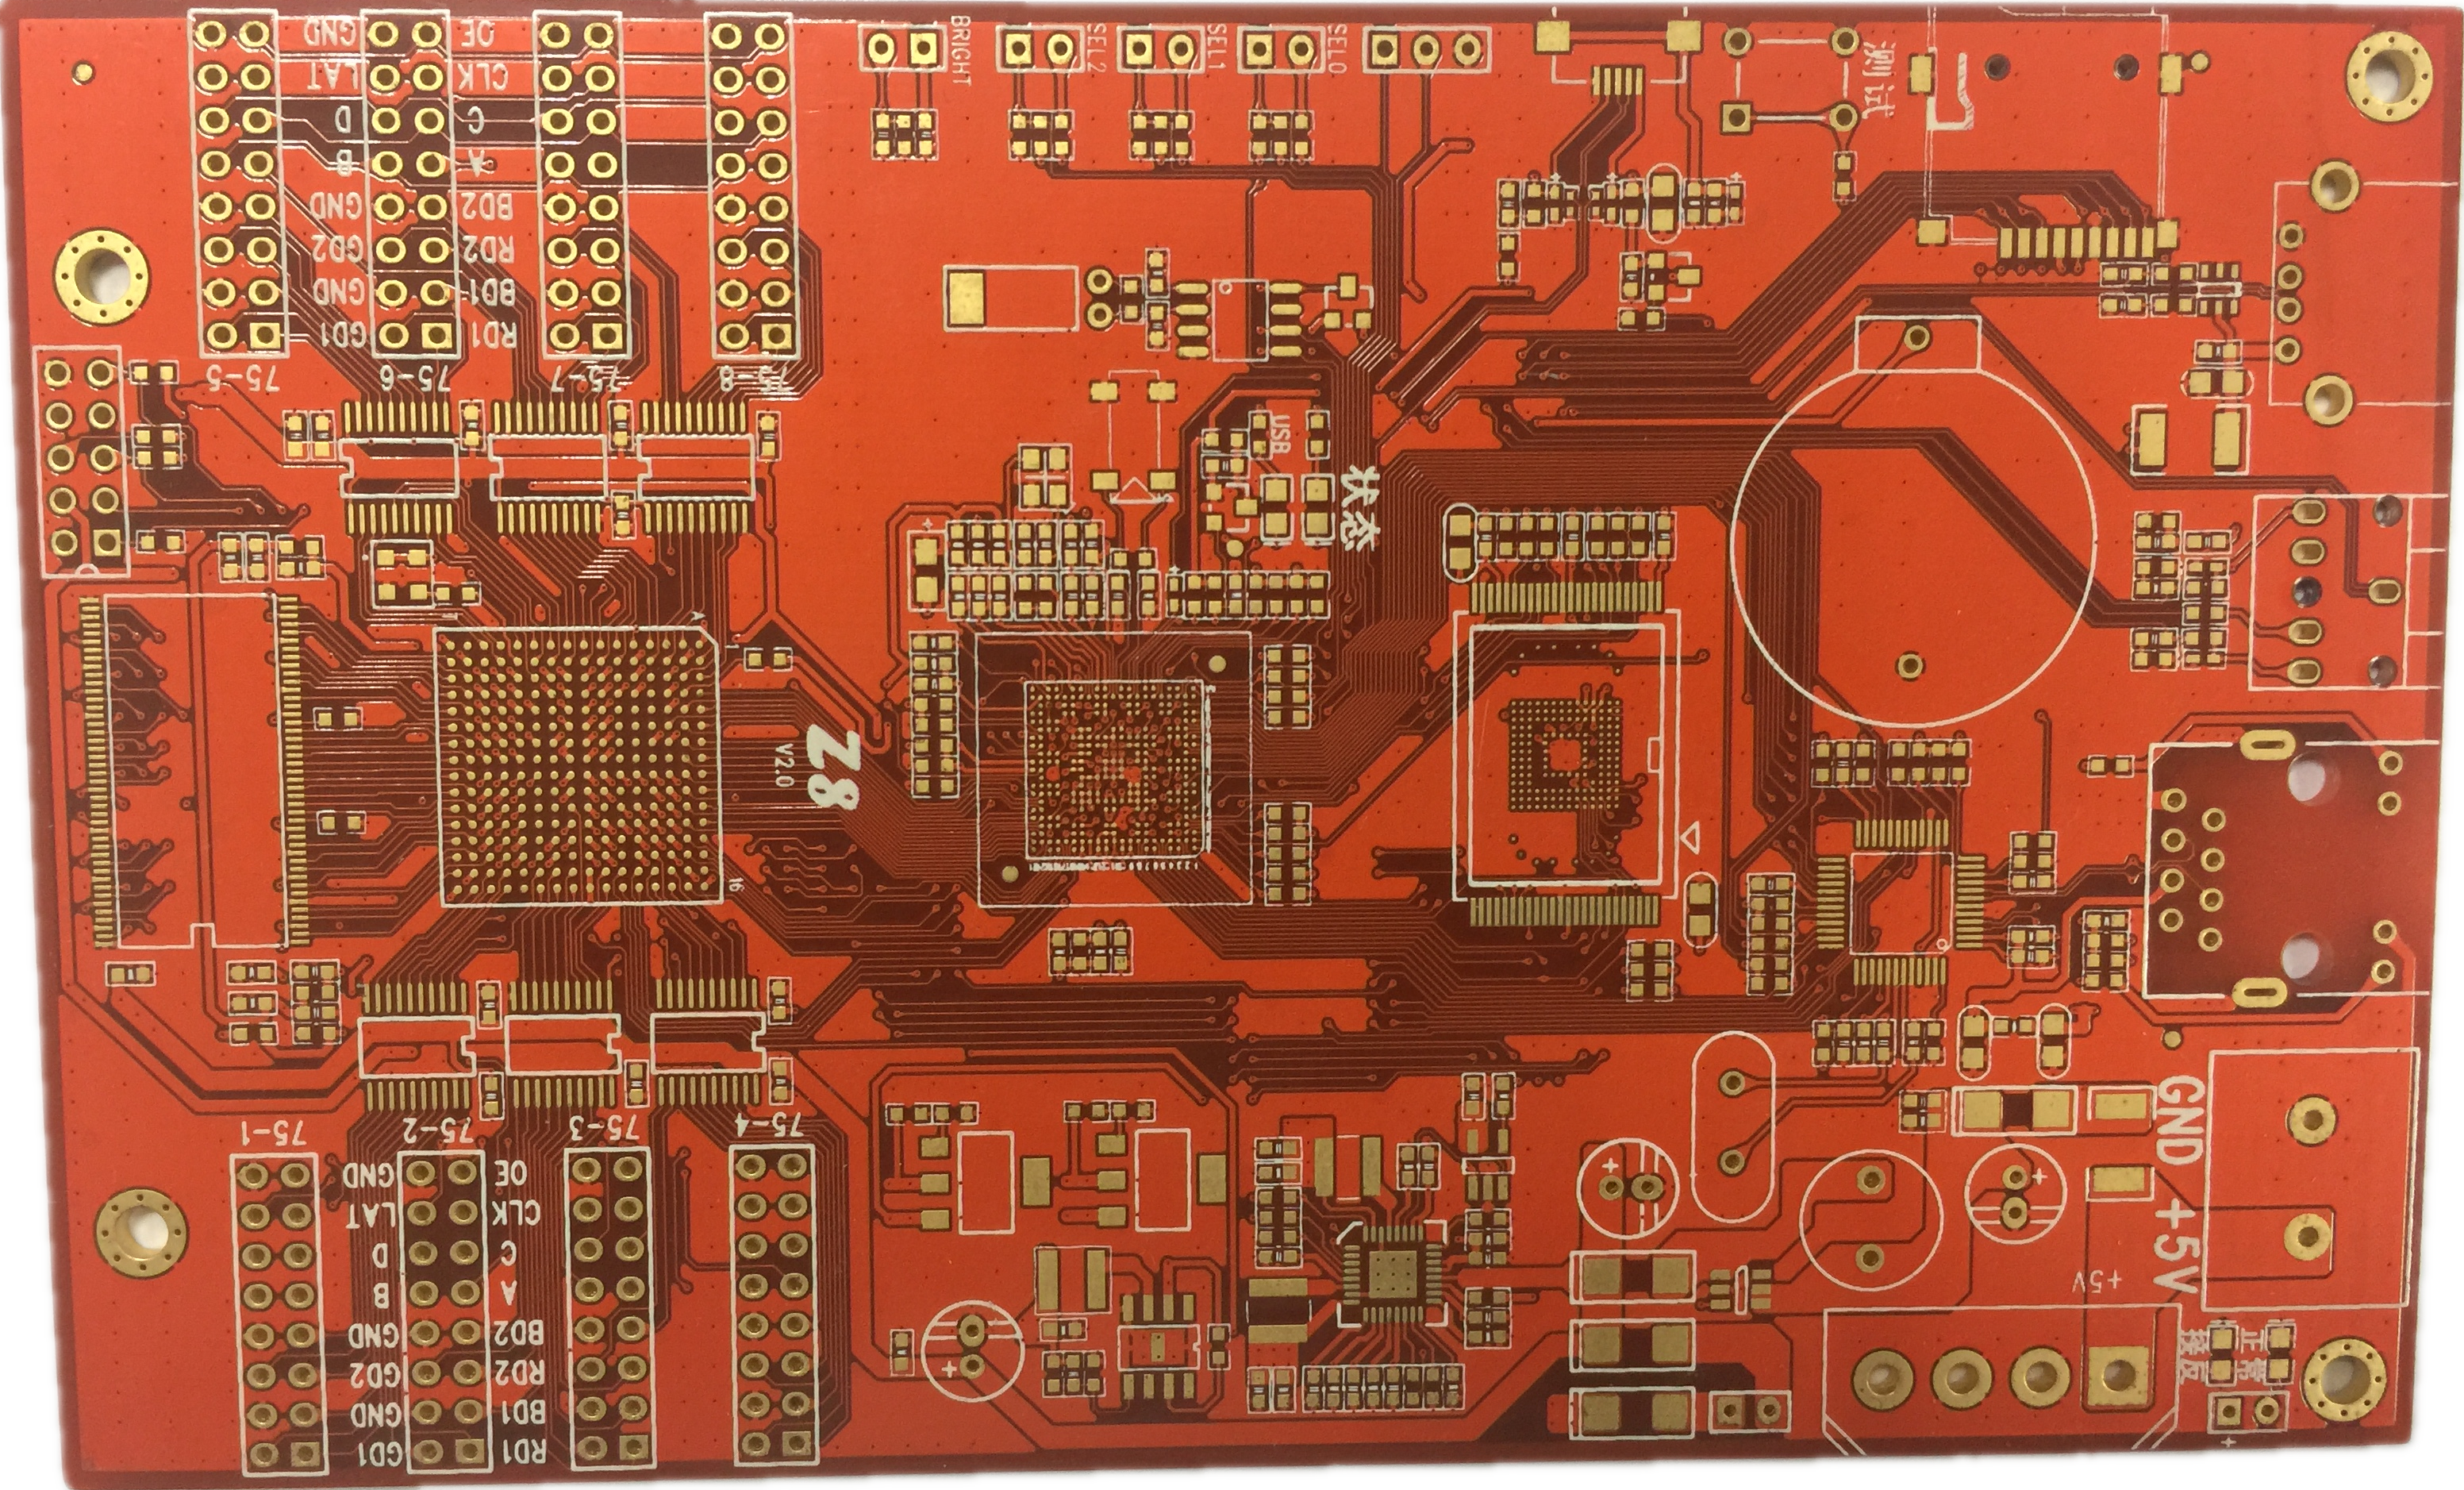 Professional Design Gold Metal Detector Circuit Prototype Pcb Printed Board Manufacturer Buried Blind Via For Sale Manufacturing